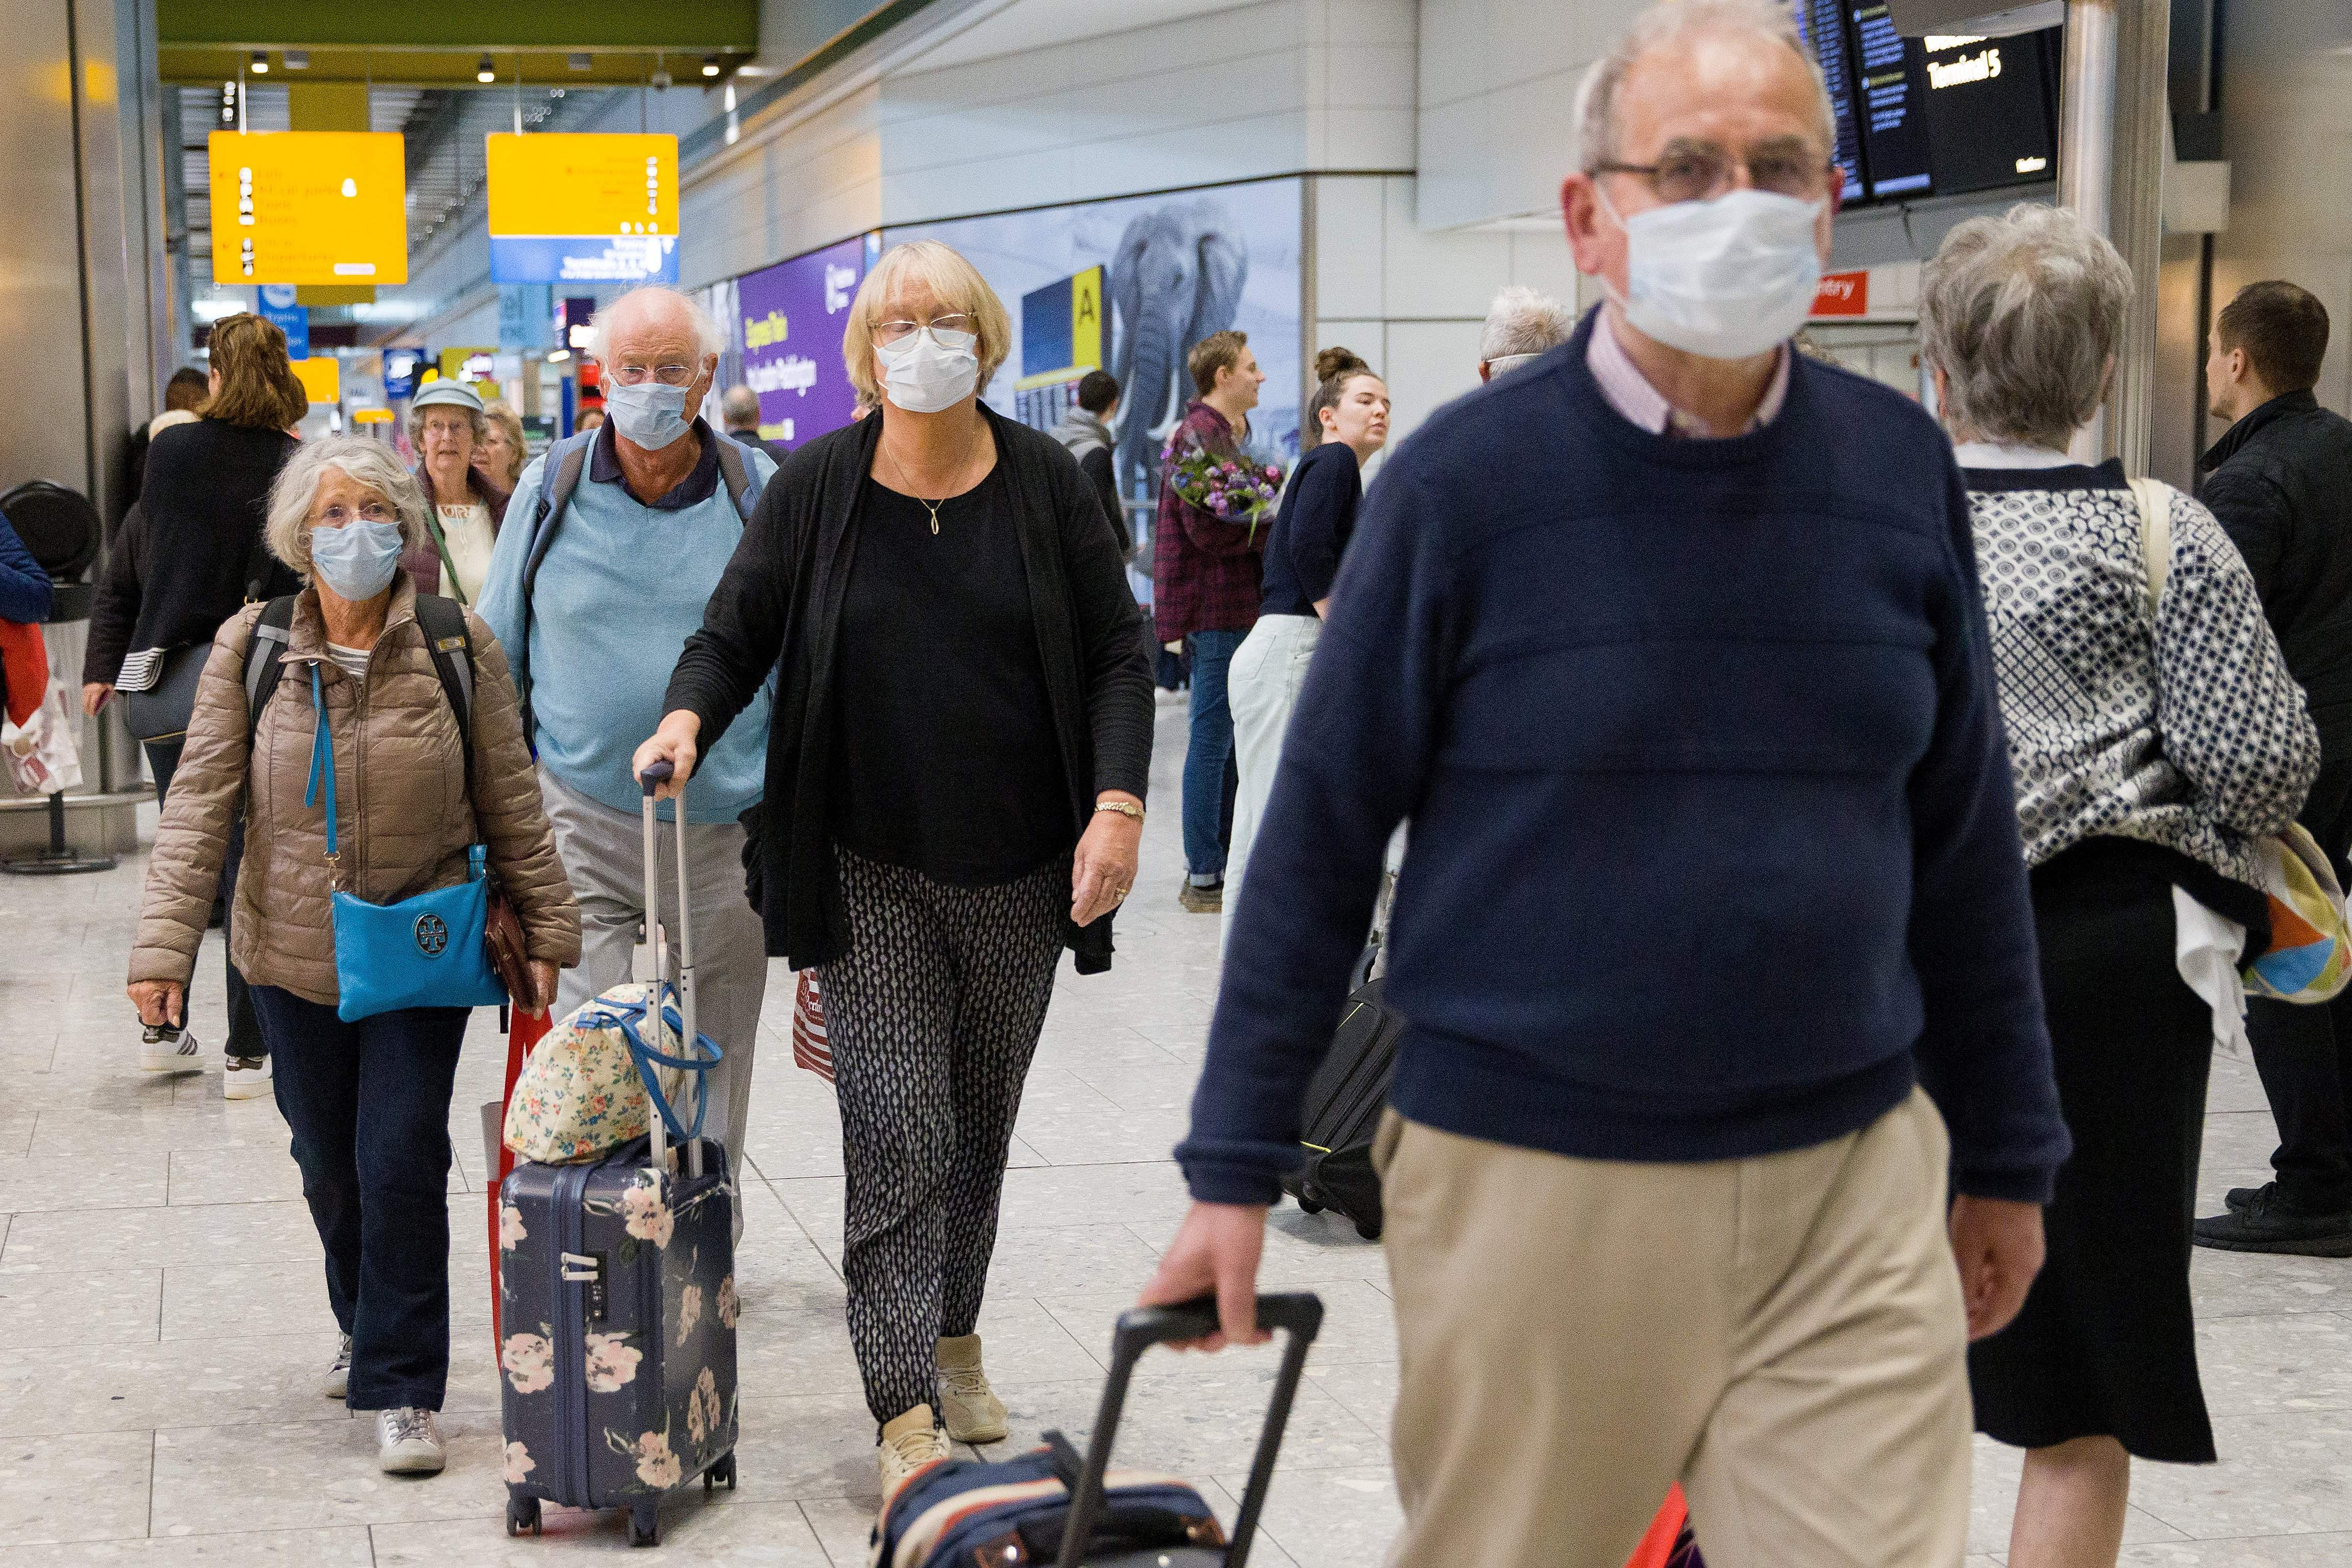 Travellers who had been aboard the Braemar cruise ship, operated by Fred Olsen Cruise Lines, and wearing face masks as a precautionary measure against covid-19, react as they arrive at Heathrow Airport in London on March 19, 2020, after being flown back from Cuba. - The MS Braemar had more than 1,000 people aboard including five confirmed coronavirus cases and more than 50 people in isolation due to showing flu-like symptoms. (Photo by Tolga AKMEN / AFP) (Photo by TOLGA AKMEN/AFP via Getty Images)